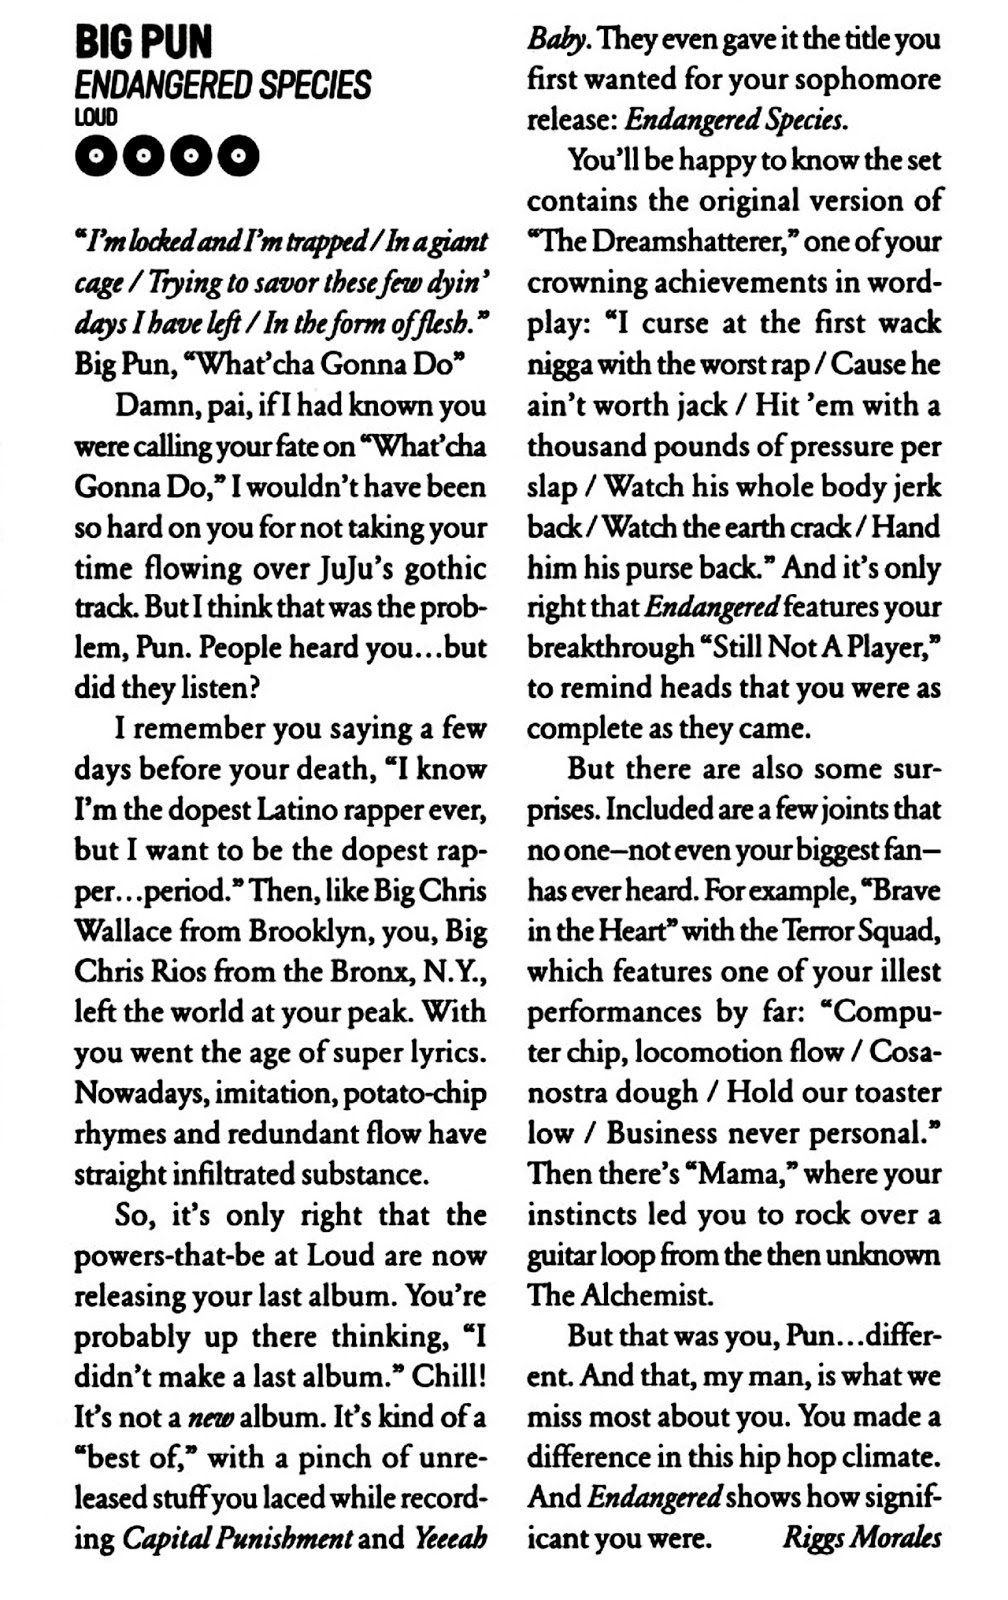 Big Pun Endangered Species Vibe Magazine Review 2001